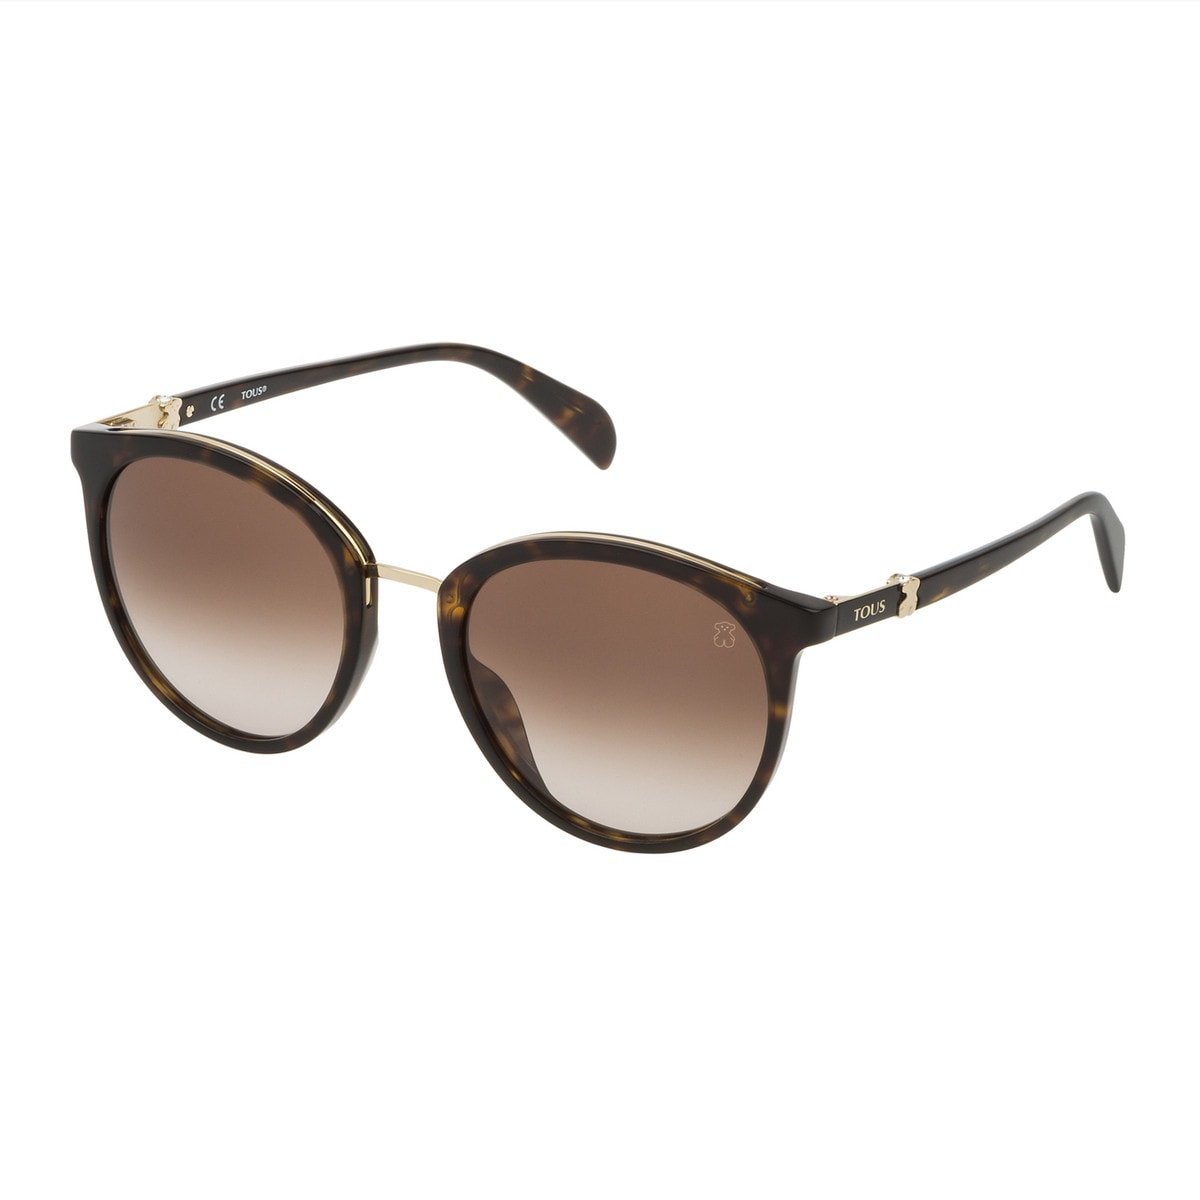 Havana Metal and Acetate Metal Mix Round Sunglasses